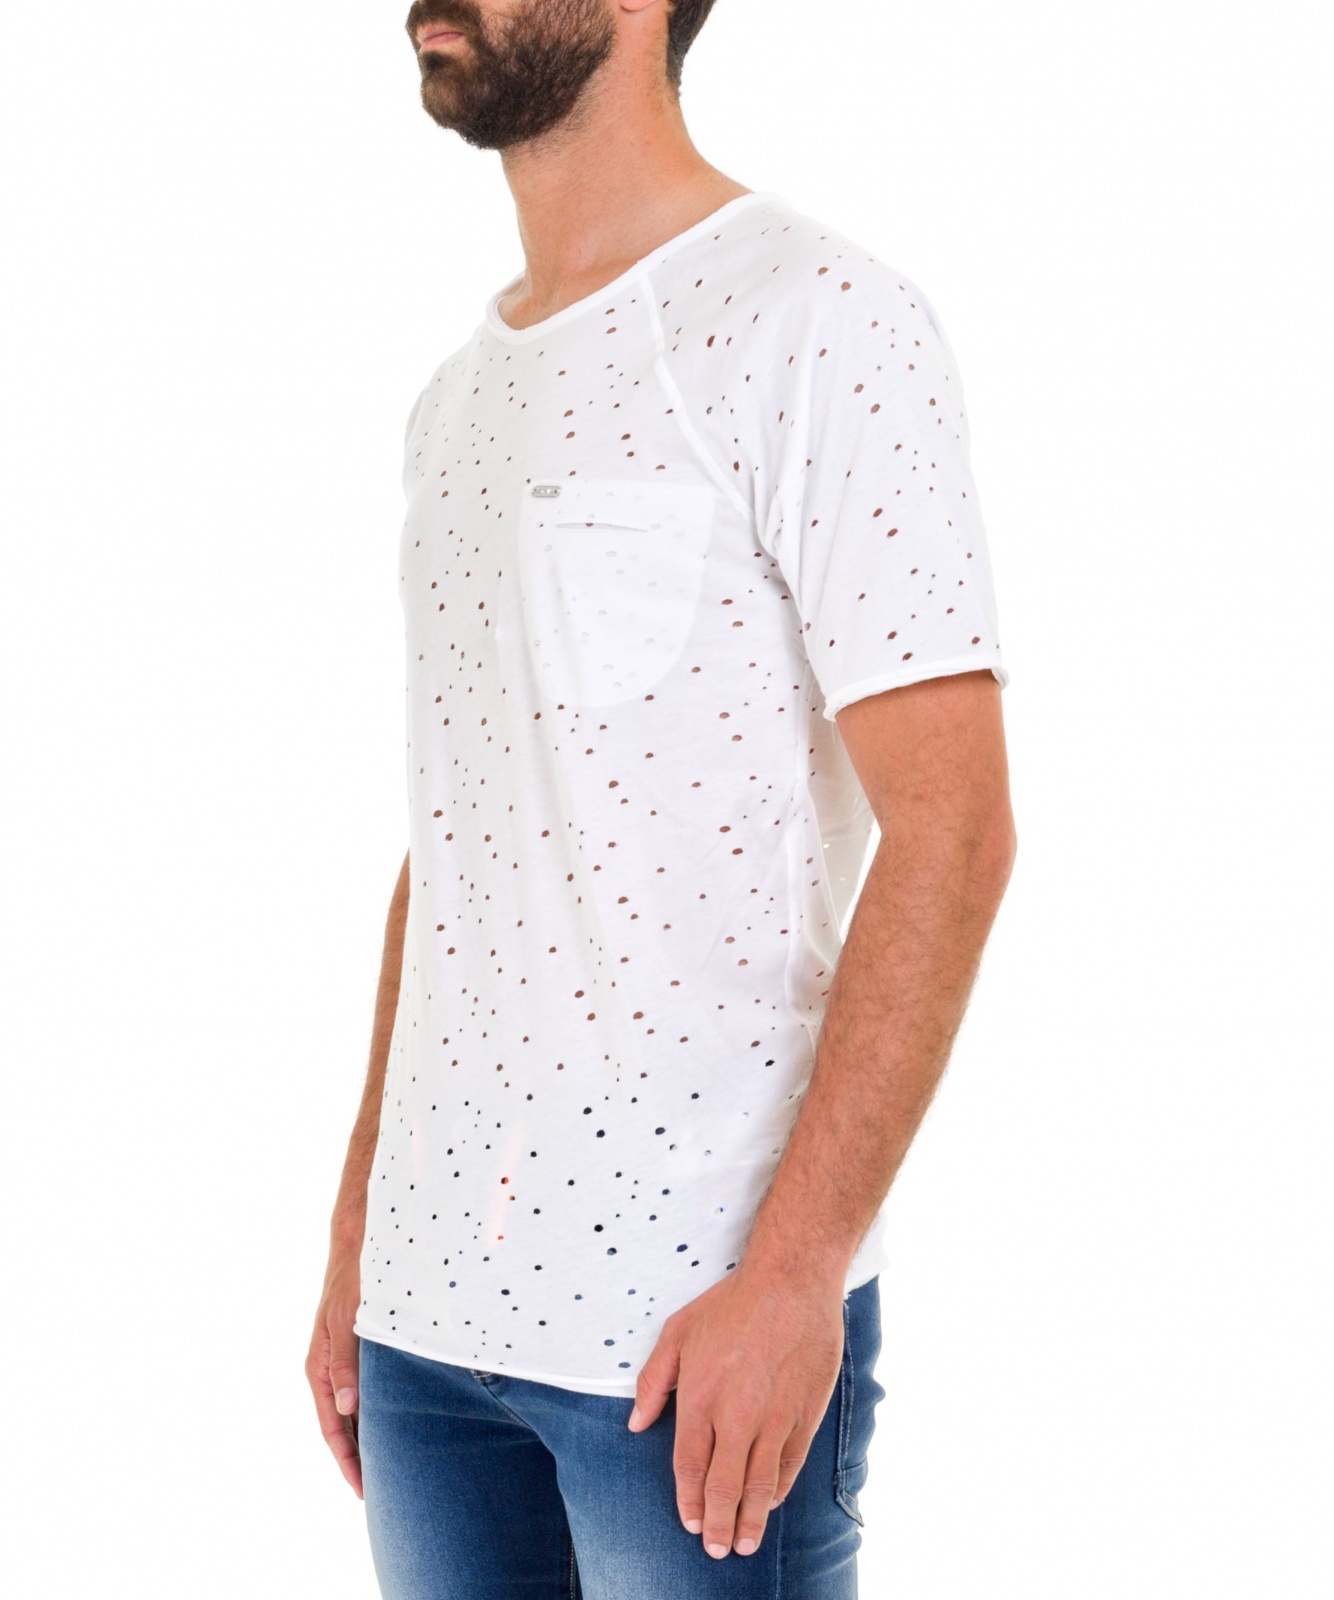 T-SHIRT PERFORATED SMK